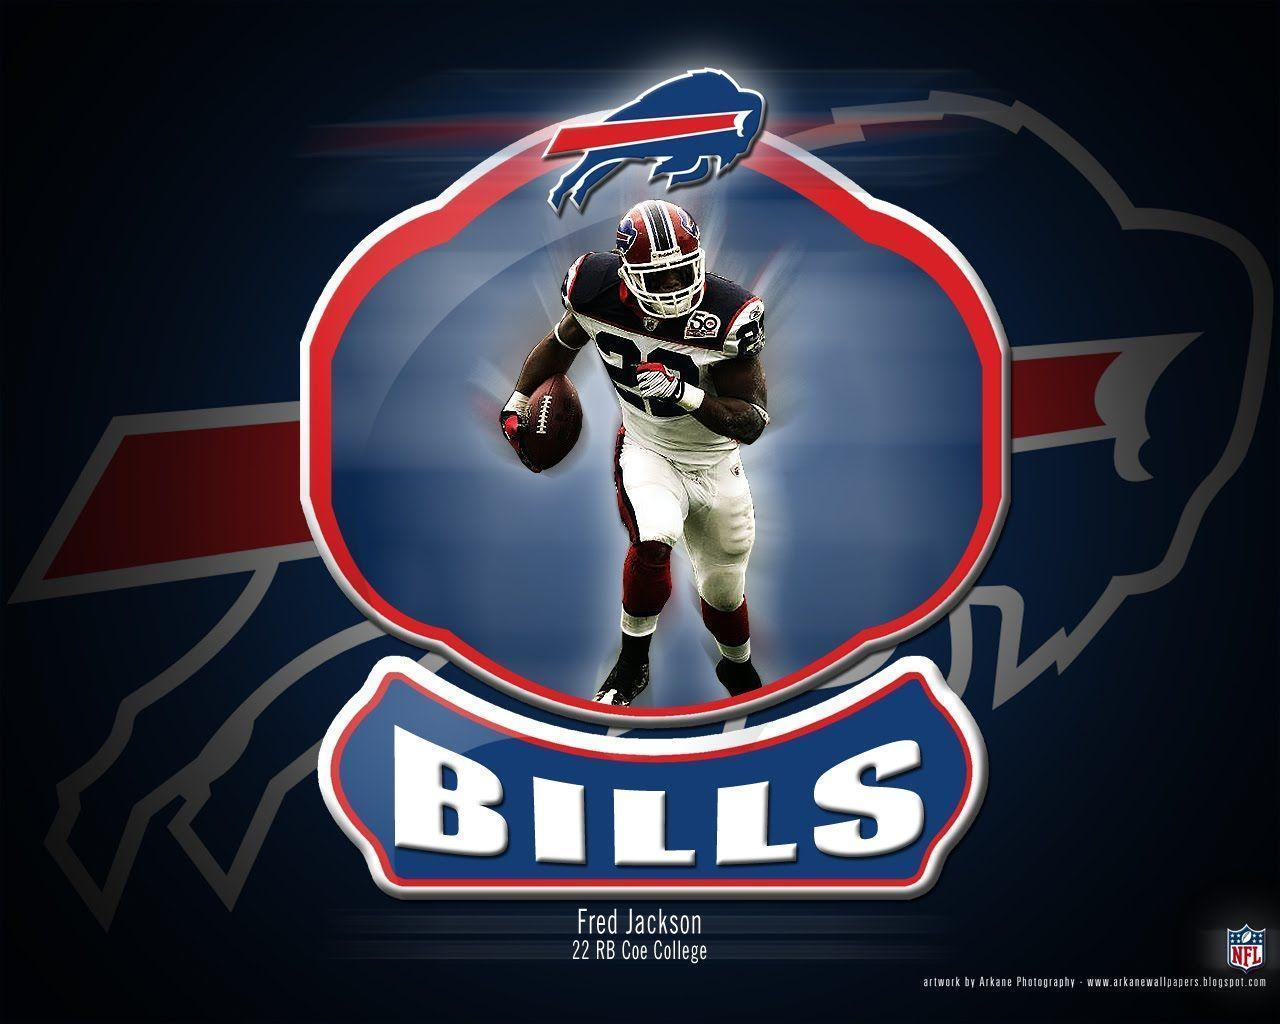 Arkane nfl wallpapers fred jackson buffalo bills